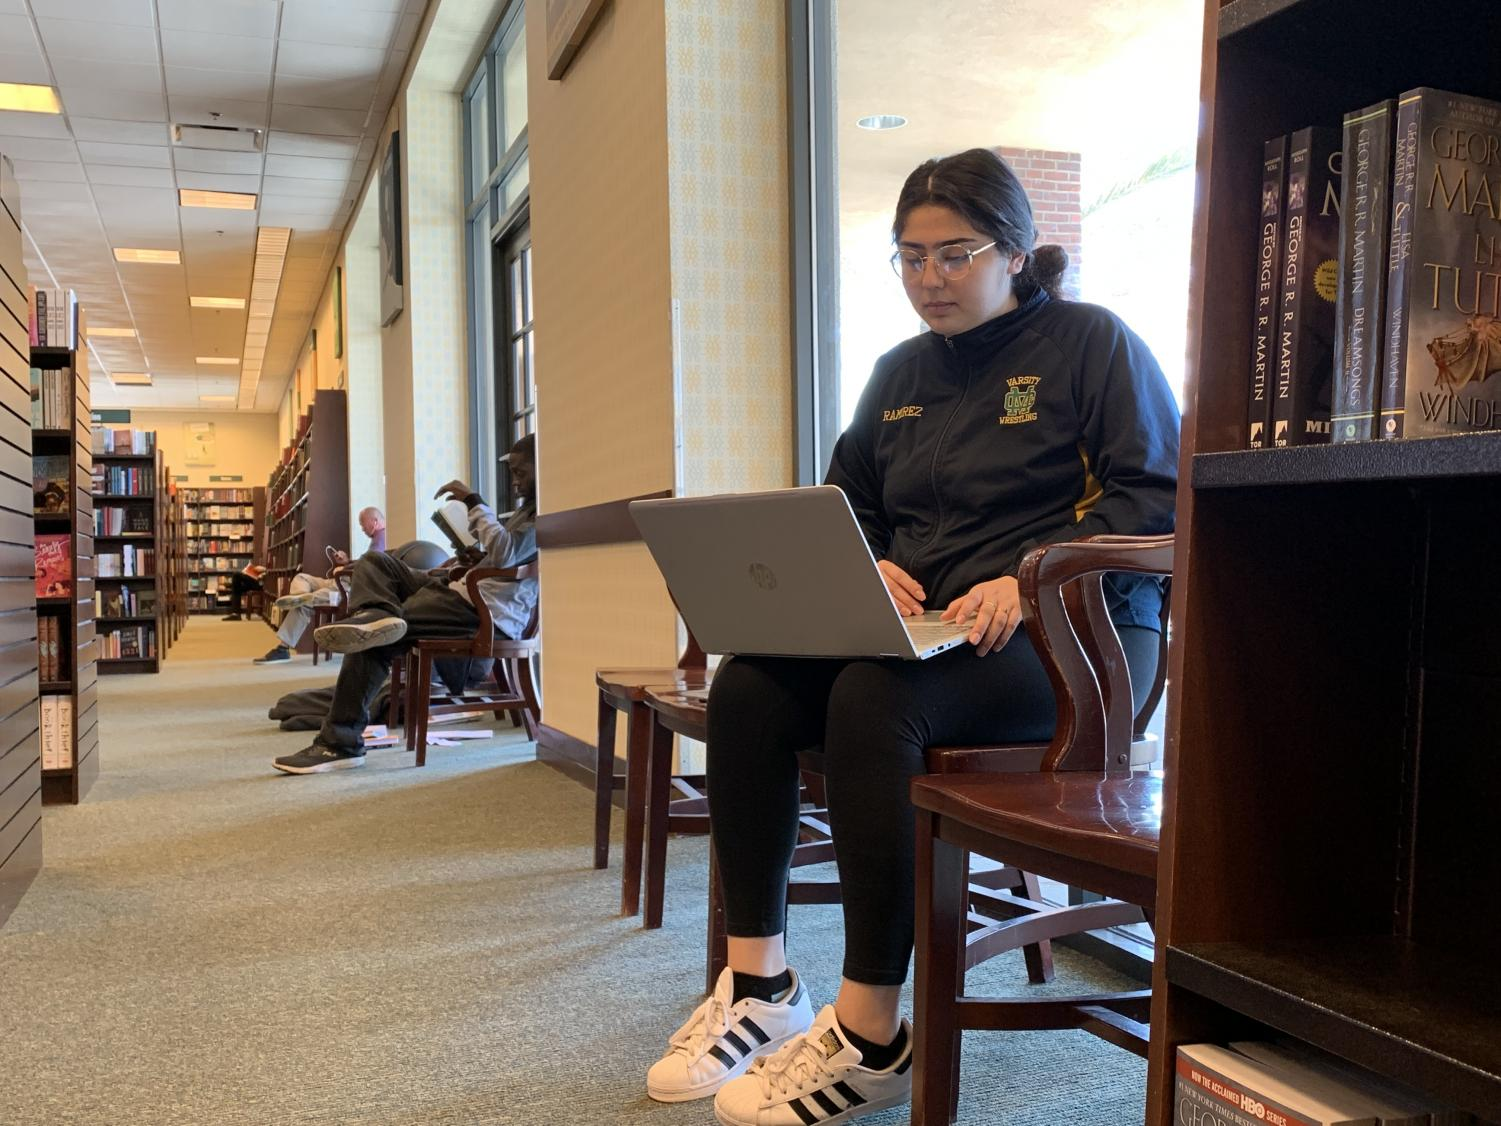 Bridgette Ramirez, 19, nursing major, works on a class assignment on her laptop at the top floor of a Barnes And Noble on May 11. It is an early Saturday morning and the quiet upstairs section of the bookstore brings Ramirez the solace needed to concentrate on her schoolwork. Besides being a full time student at El Camino College, she balances having a job at a daycare and must manage her time wisely. Photo credit: Kevin Caparoso